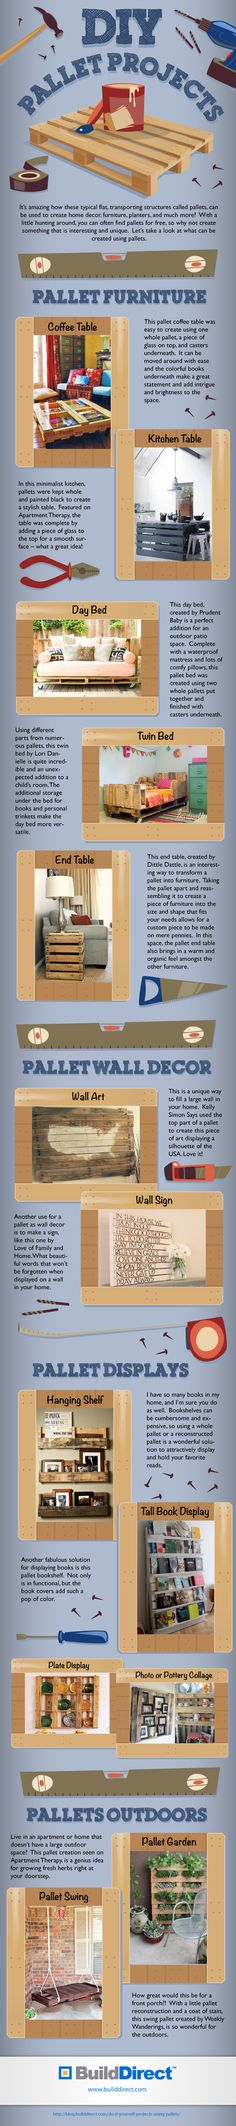 https://www.echopaul.com/ #diy Great ideas to turn your regular pallet into a creative and beautiful piece of furniture or decor! Which is your favorite? Click on the graphic or visit http://ow.ly/oyGJL to read more.